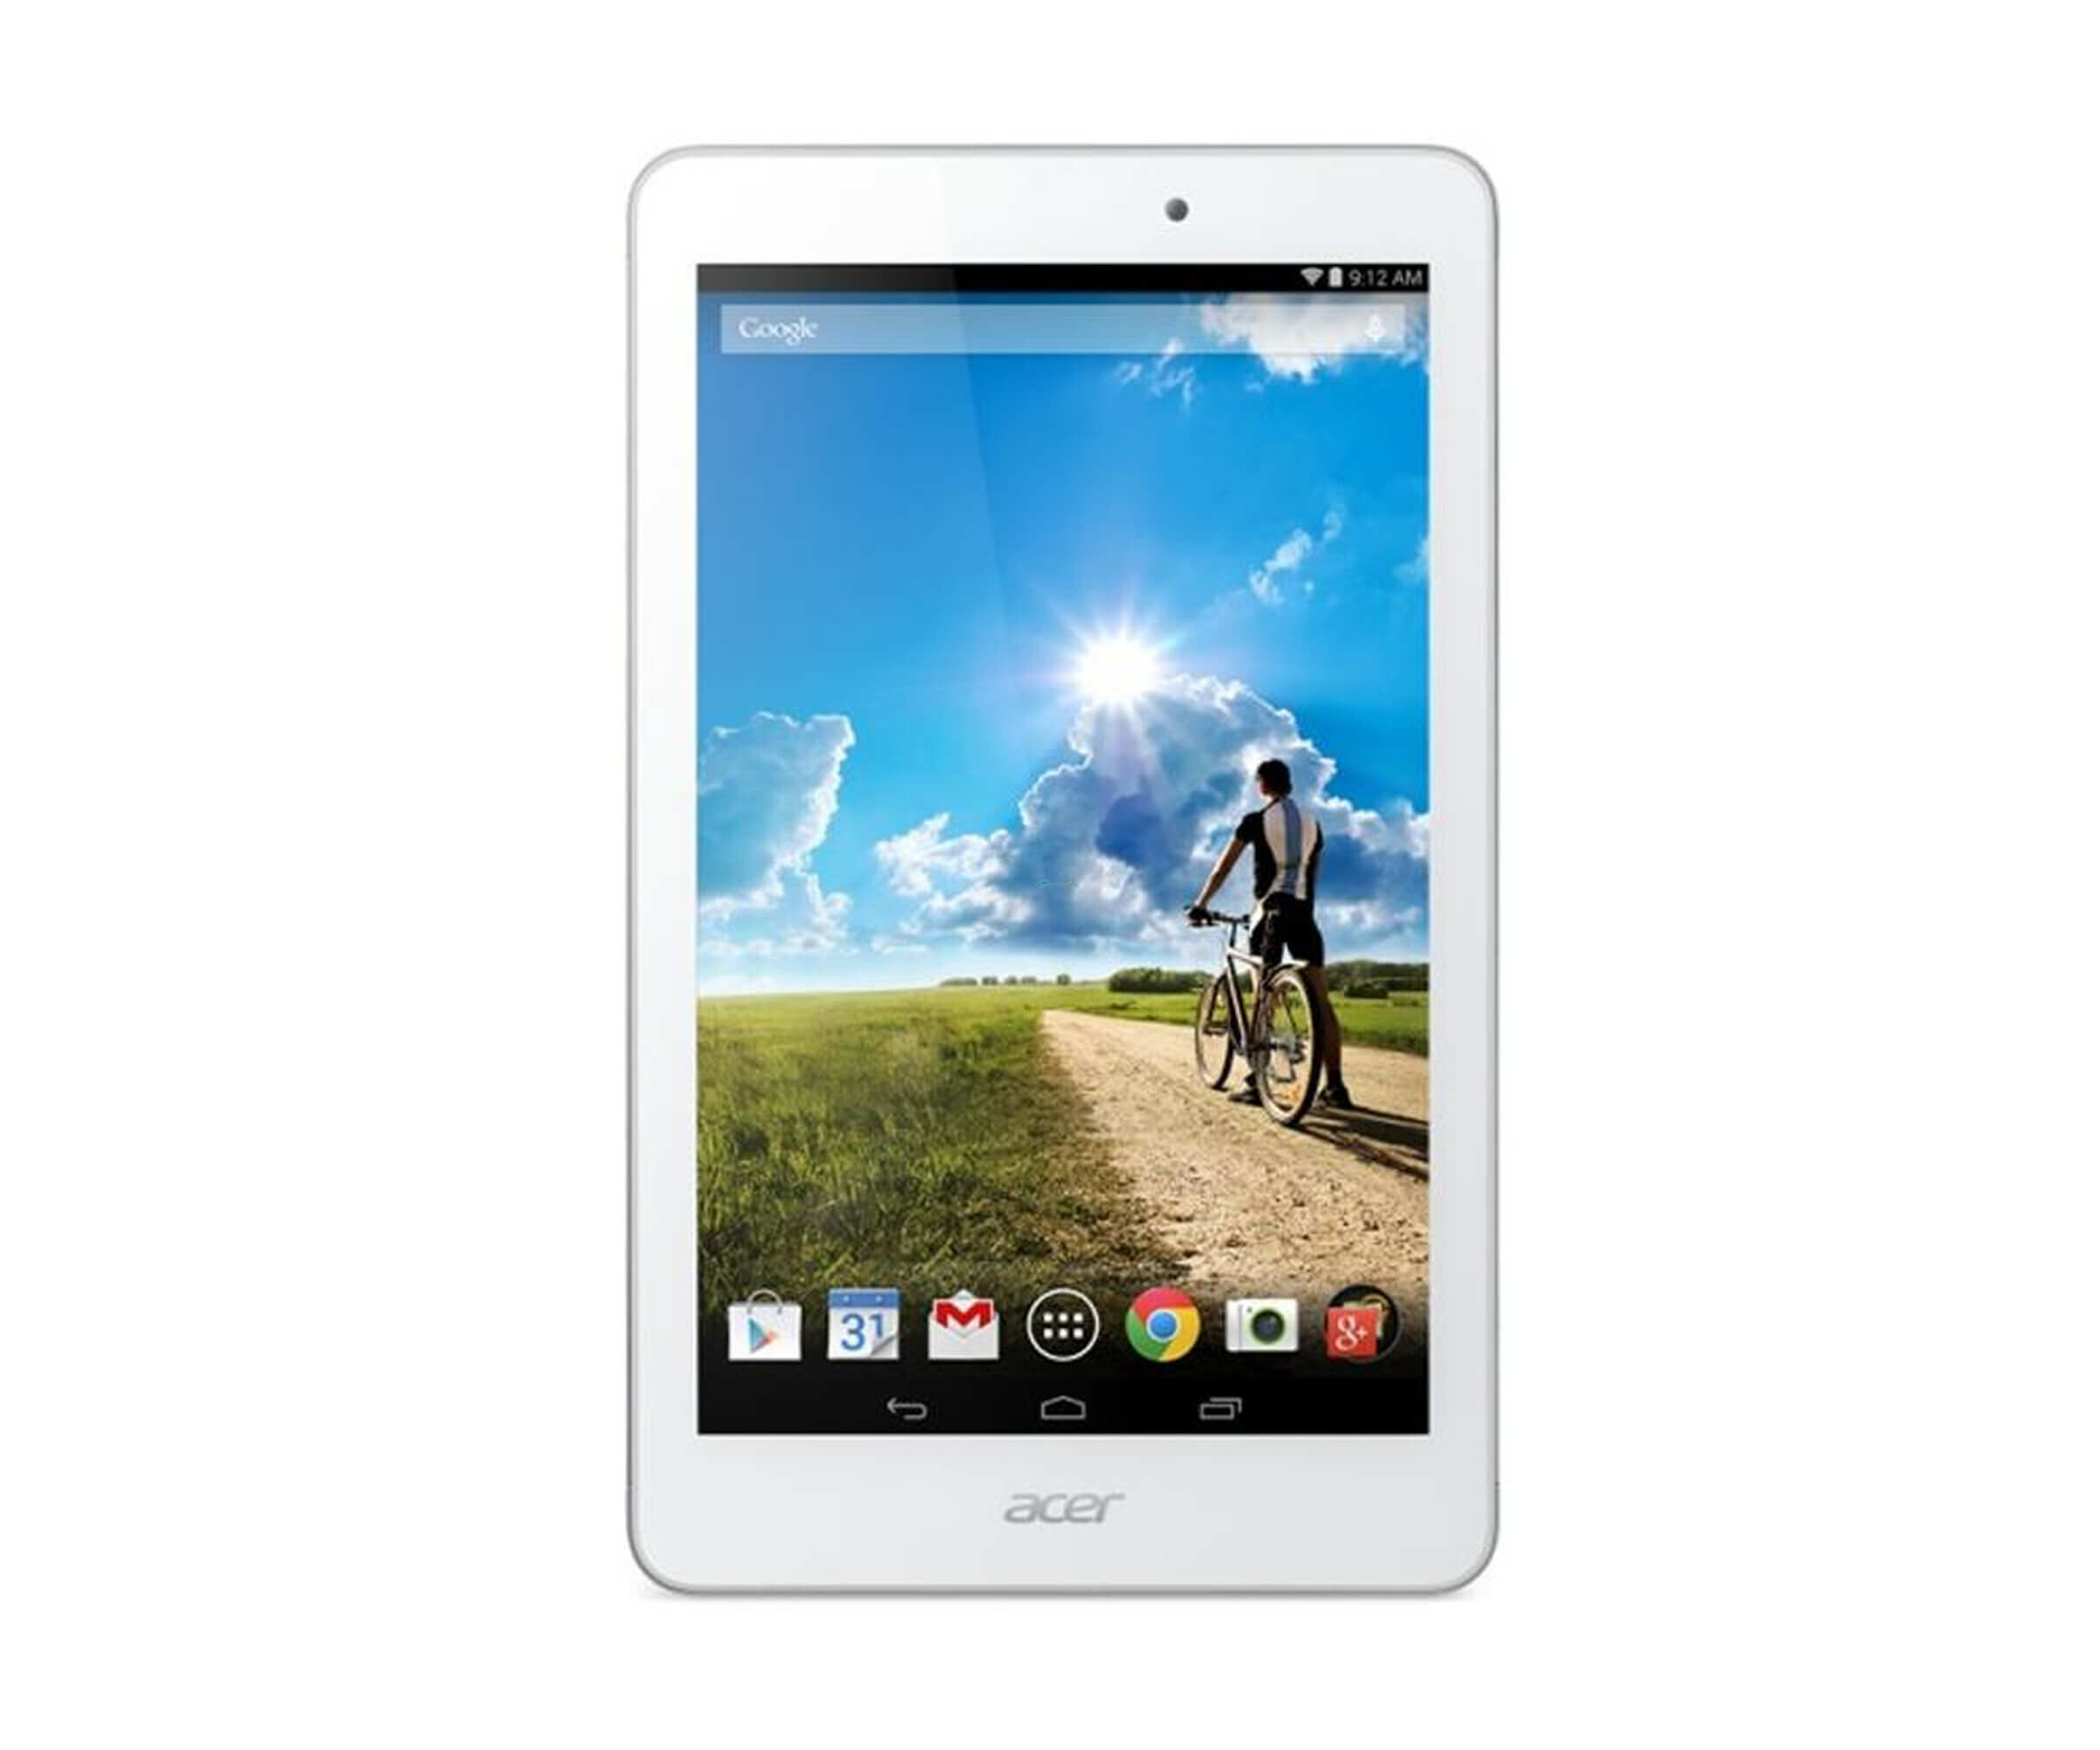 acer-iconia-a1-840-tablet-16-gb-20-3-cm-8-1280-x-800-